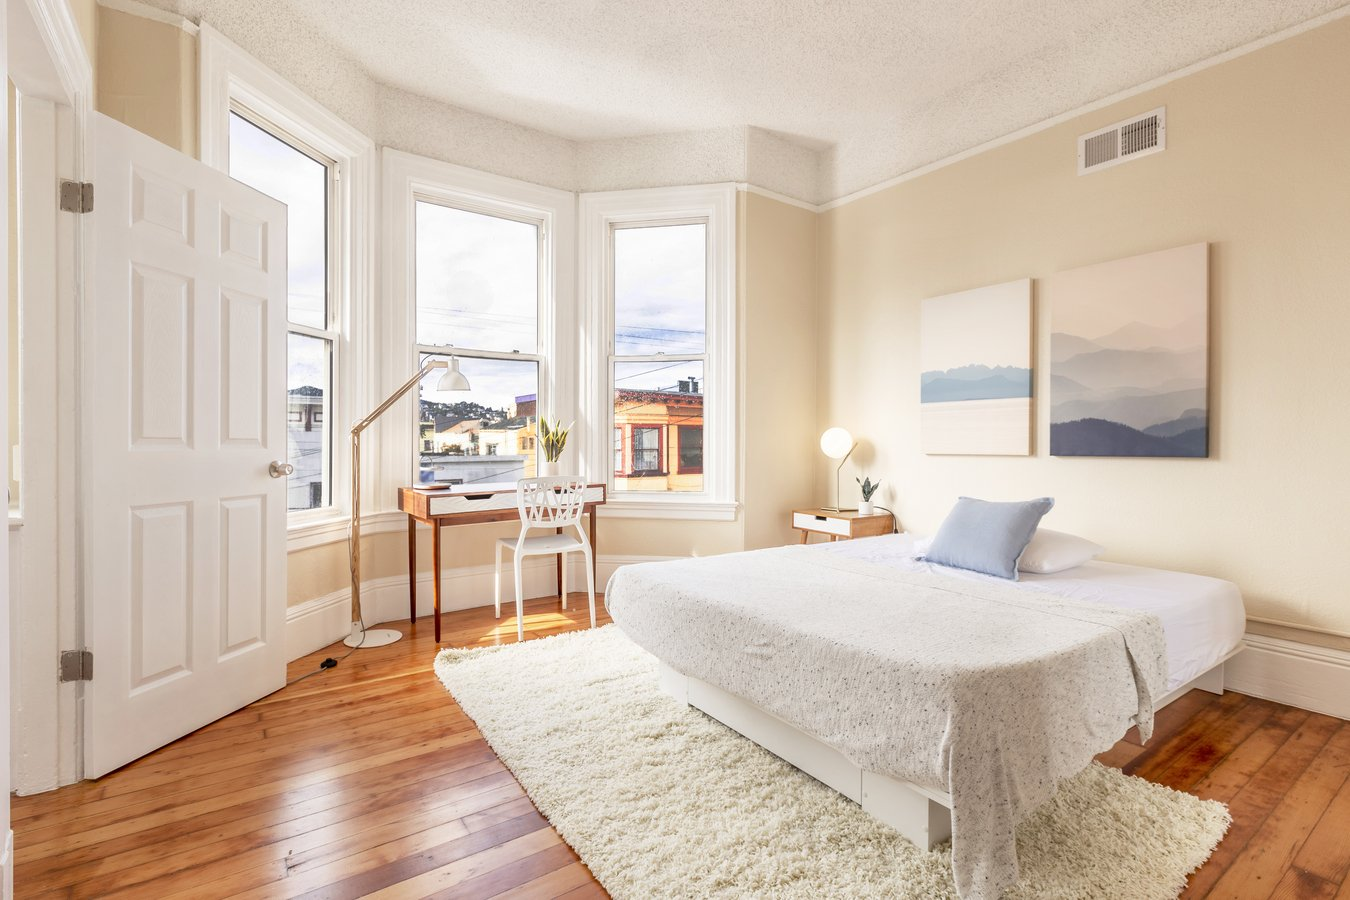 1 Bedroom 1 Bathroom Apartment for rent at 24Th St & Alabama St Coliving in San Francisco, CA